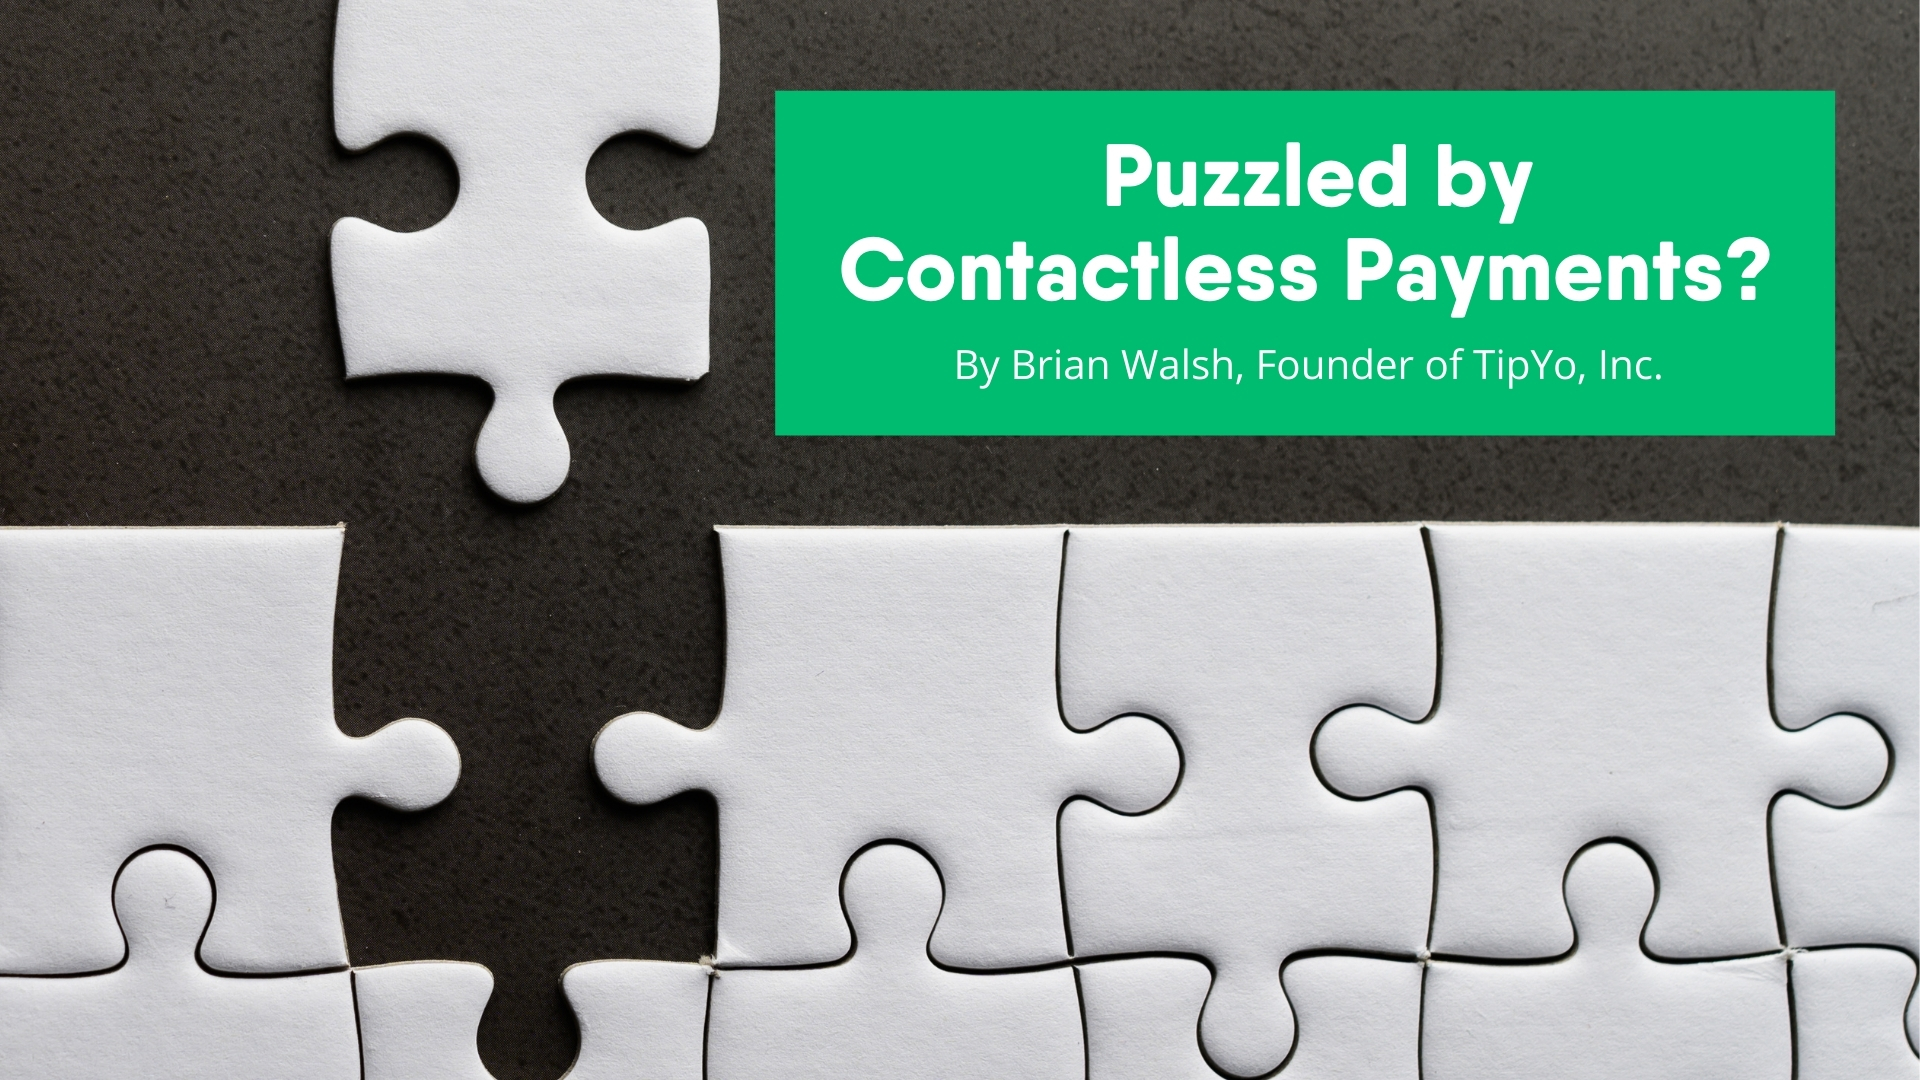 Puzzled by Contactless Payments?   TipYo